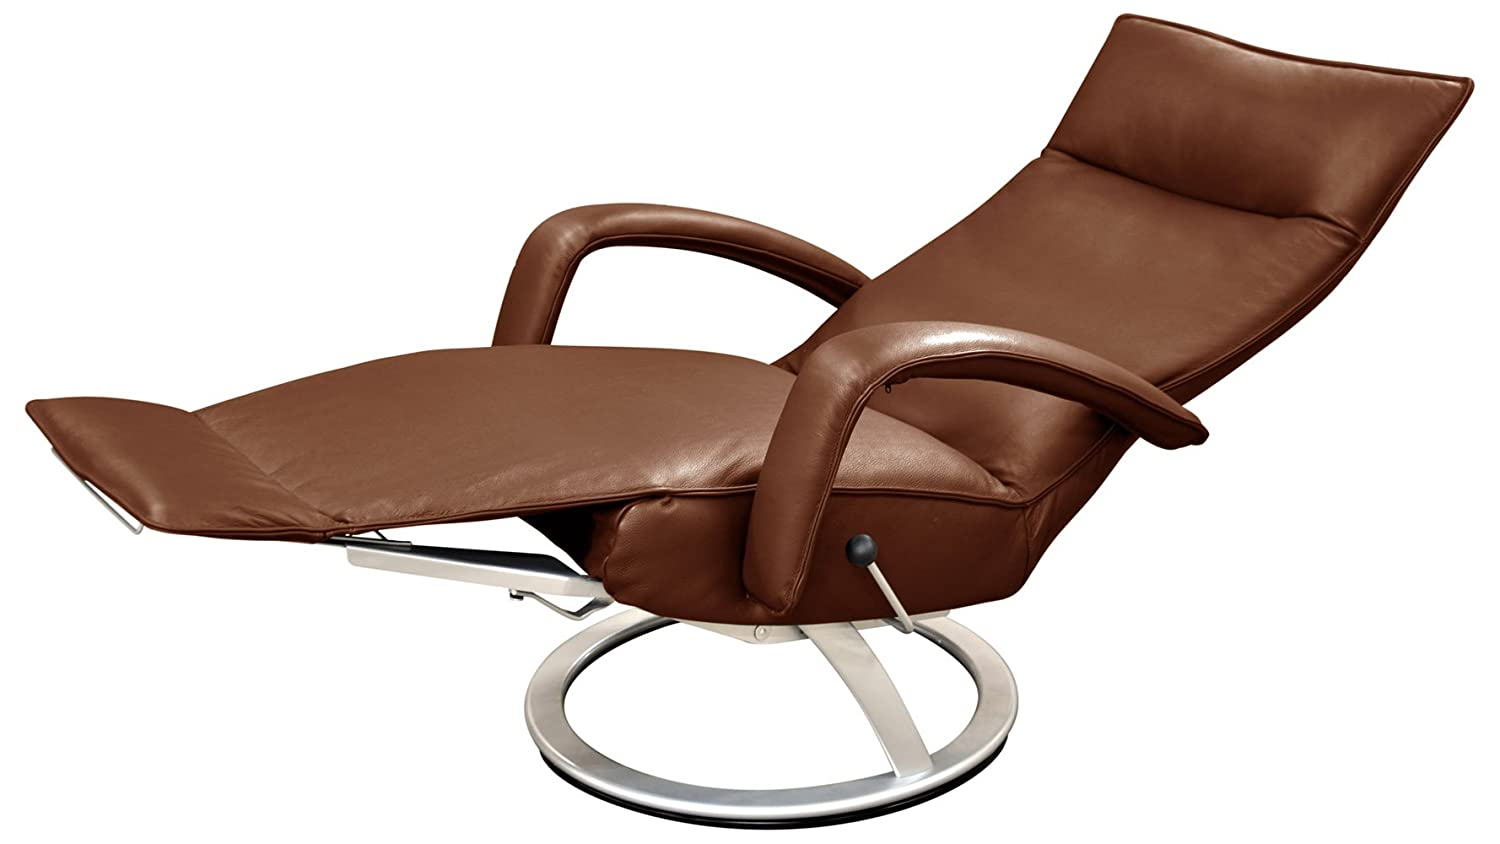 Amazon.com Gaga Recliner Chair Saddle Leather by Lafer Recliner Chairs Kitchen u0026 Dining  sc 1 st  Amazon.com & Amazon.com: Gaga Recliner Chair Saddle Leather by Lafer Recliner ... islam-shia.org